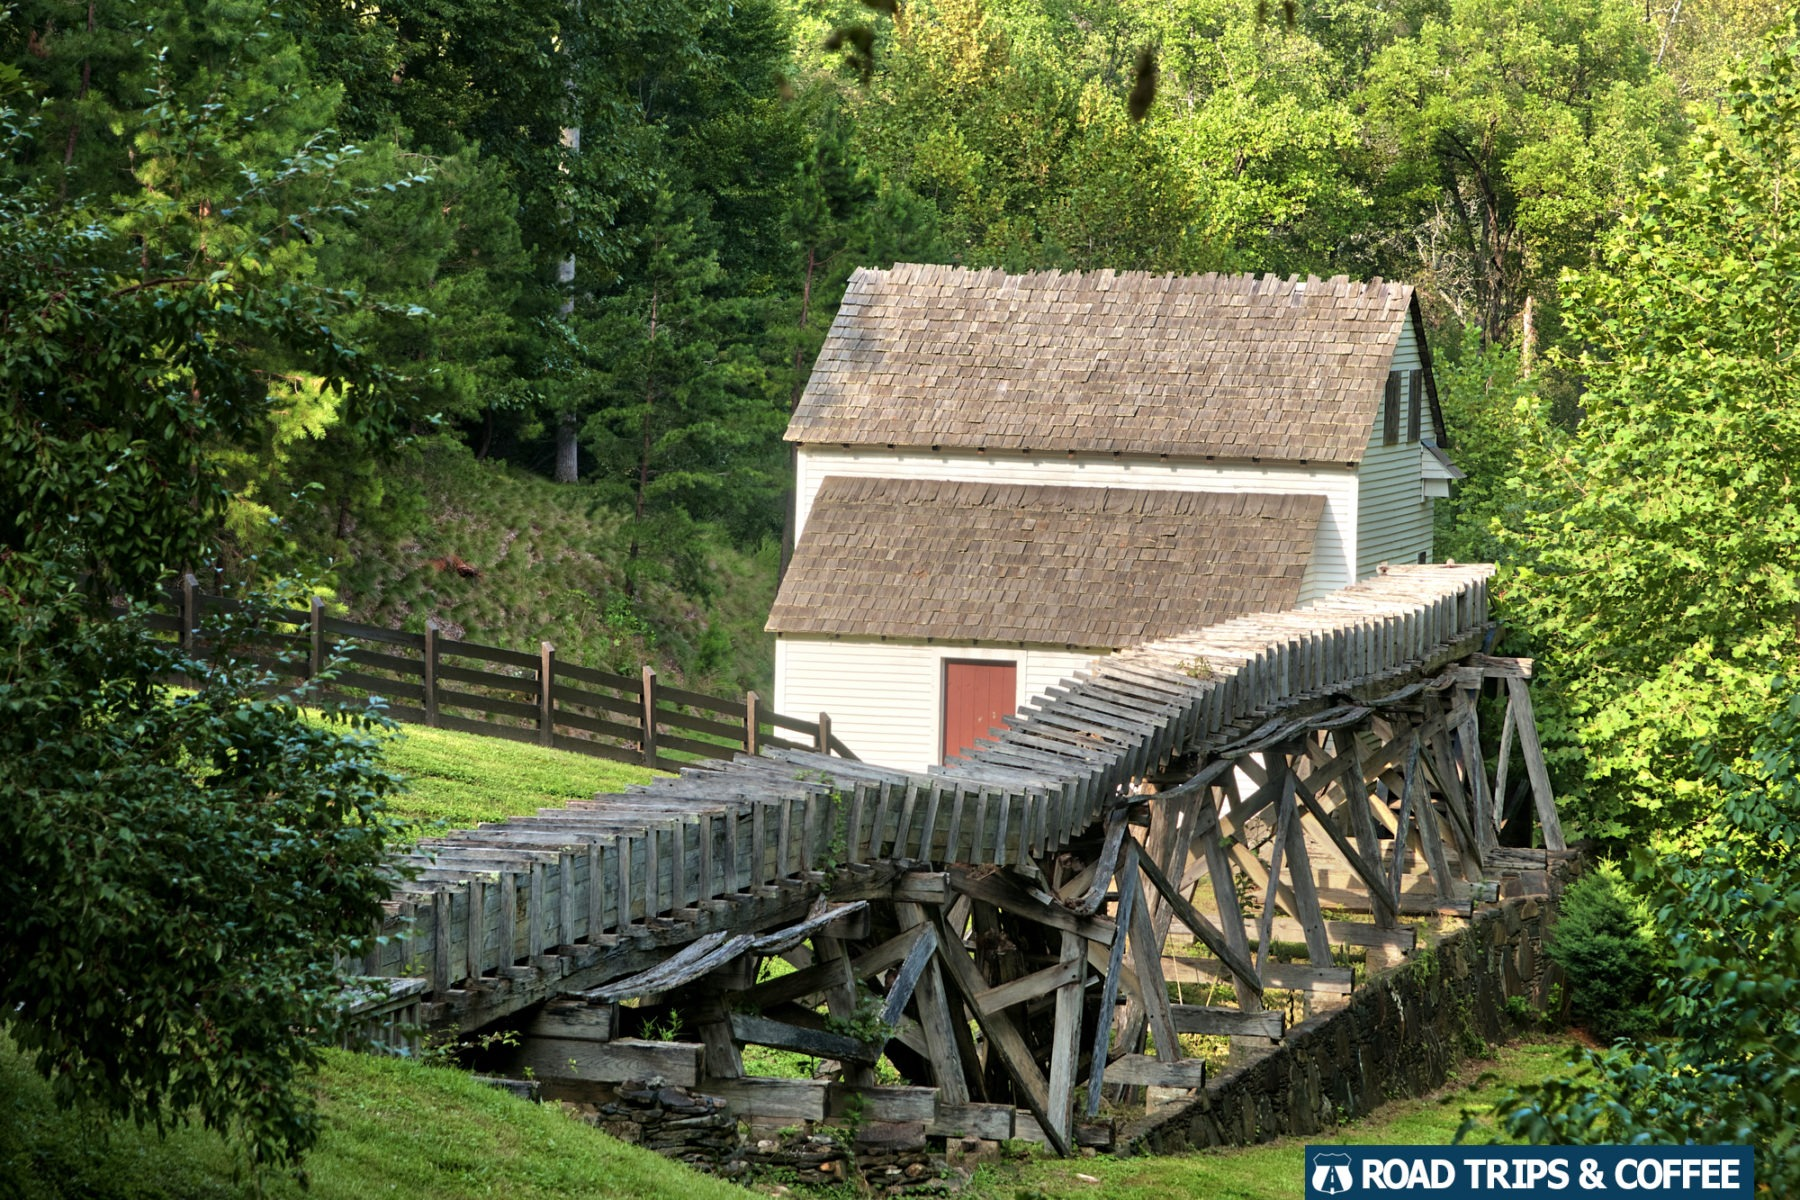 An historic grist mill in the settlement village at Virginia's Explore Park on the Blue Ridge Parkway in Roanoke, Virginia